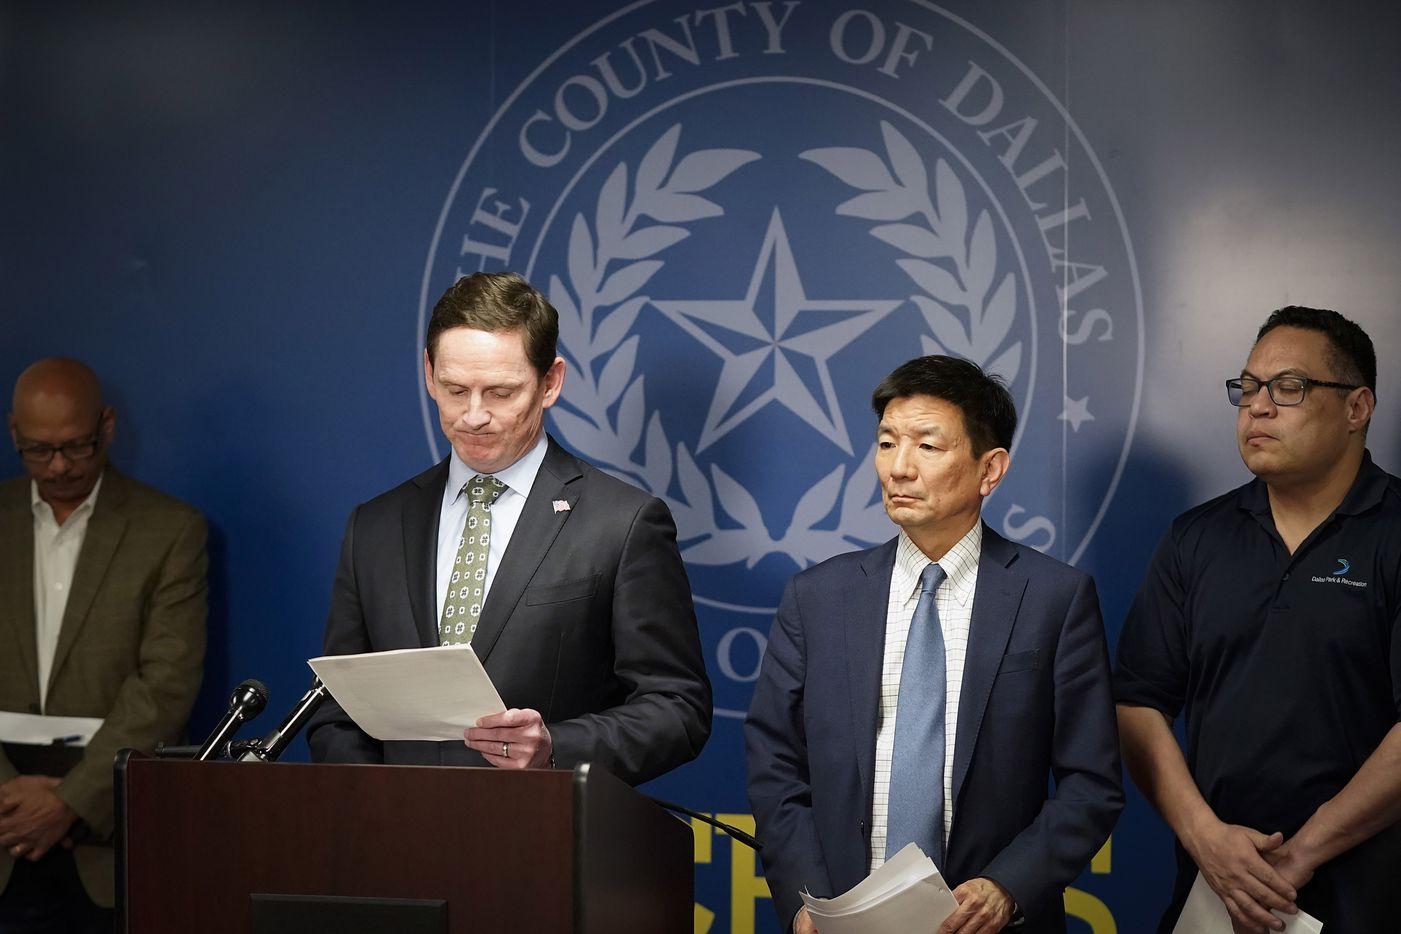 Dallas County Judge Clay Jenkins announces that a local state of disaster for public health emergency has been declared in the county, due to more cases of the new coronavirus, late Thursday, March 12. 2020, in Dallas. To his right is Dr. Philip Huang, Director of Dallas County Health and Human Services. At far right is Dallas city council member Omar Narvaez.  At left is Rocky Vaz, City of Dallas Director of Emergency Management.